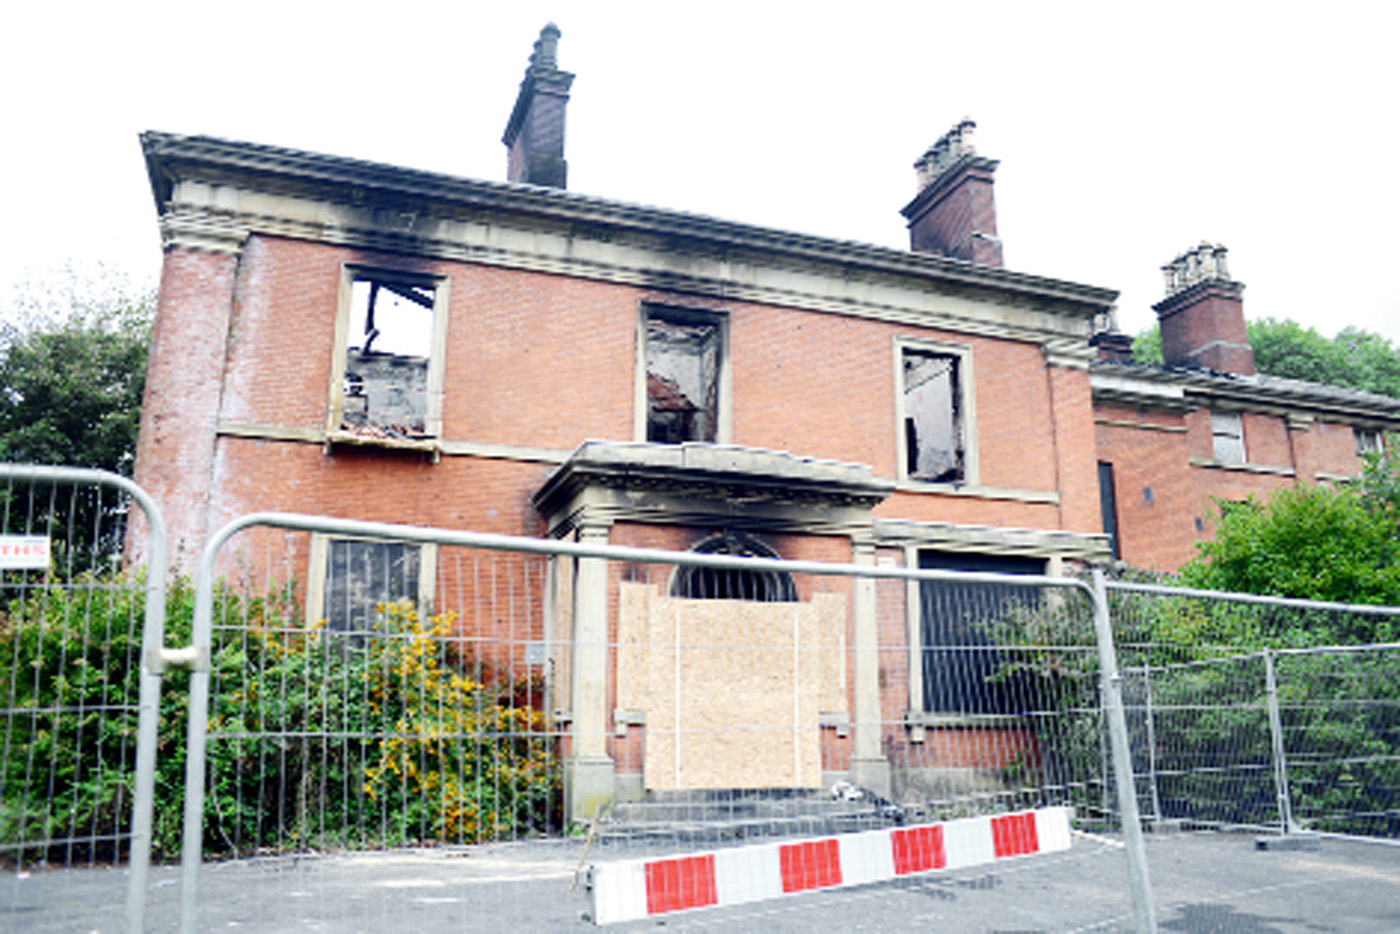 Future uncertain for Blackburn stately home gutted in arson attack